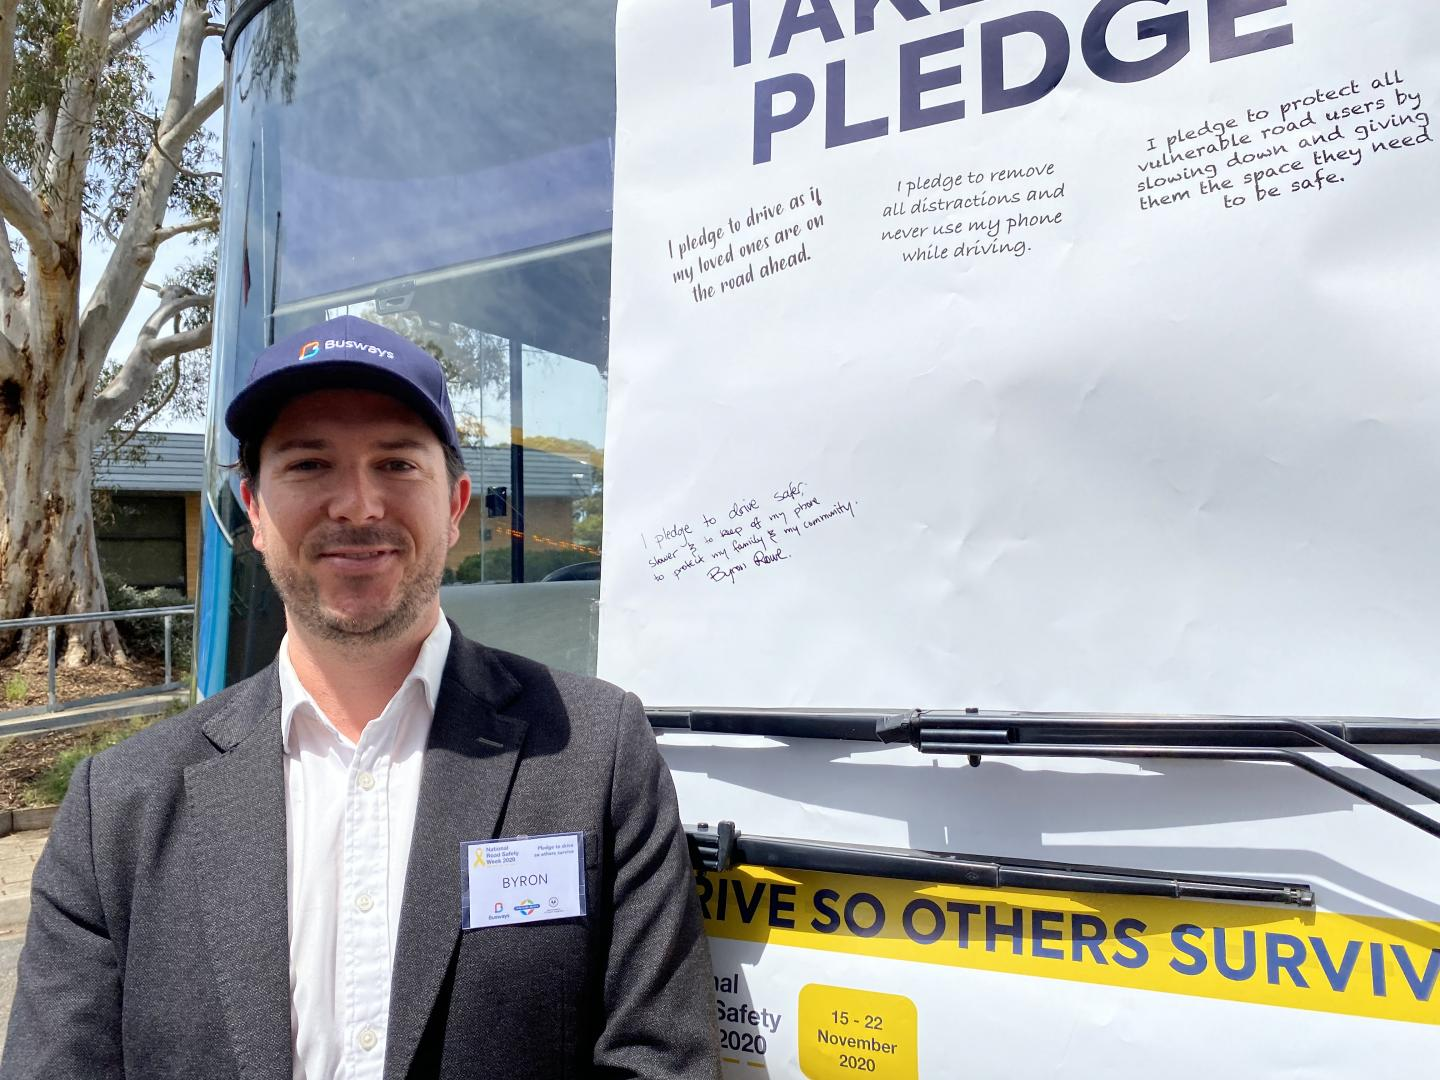 Busways Managing Director Byron Rowe took the Pledge in South Australia